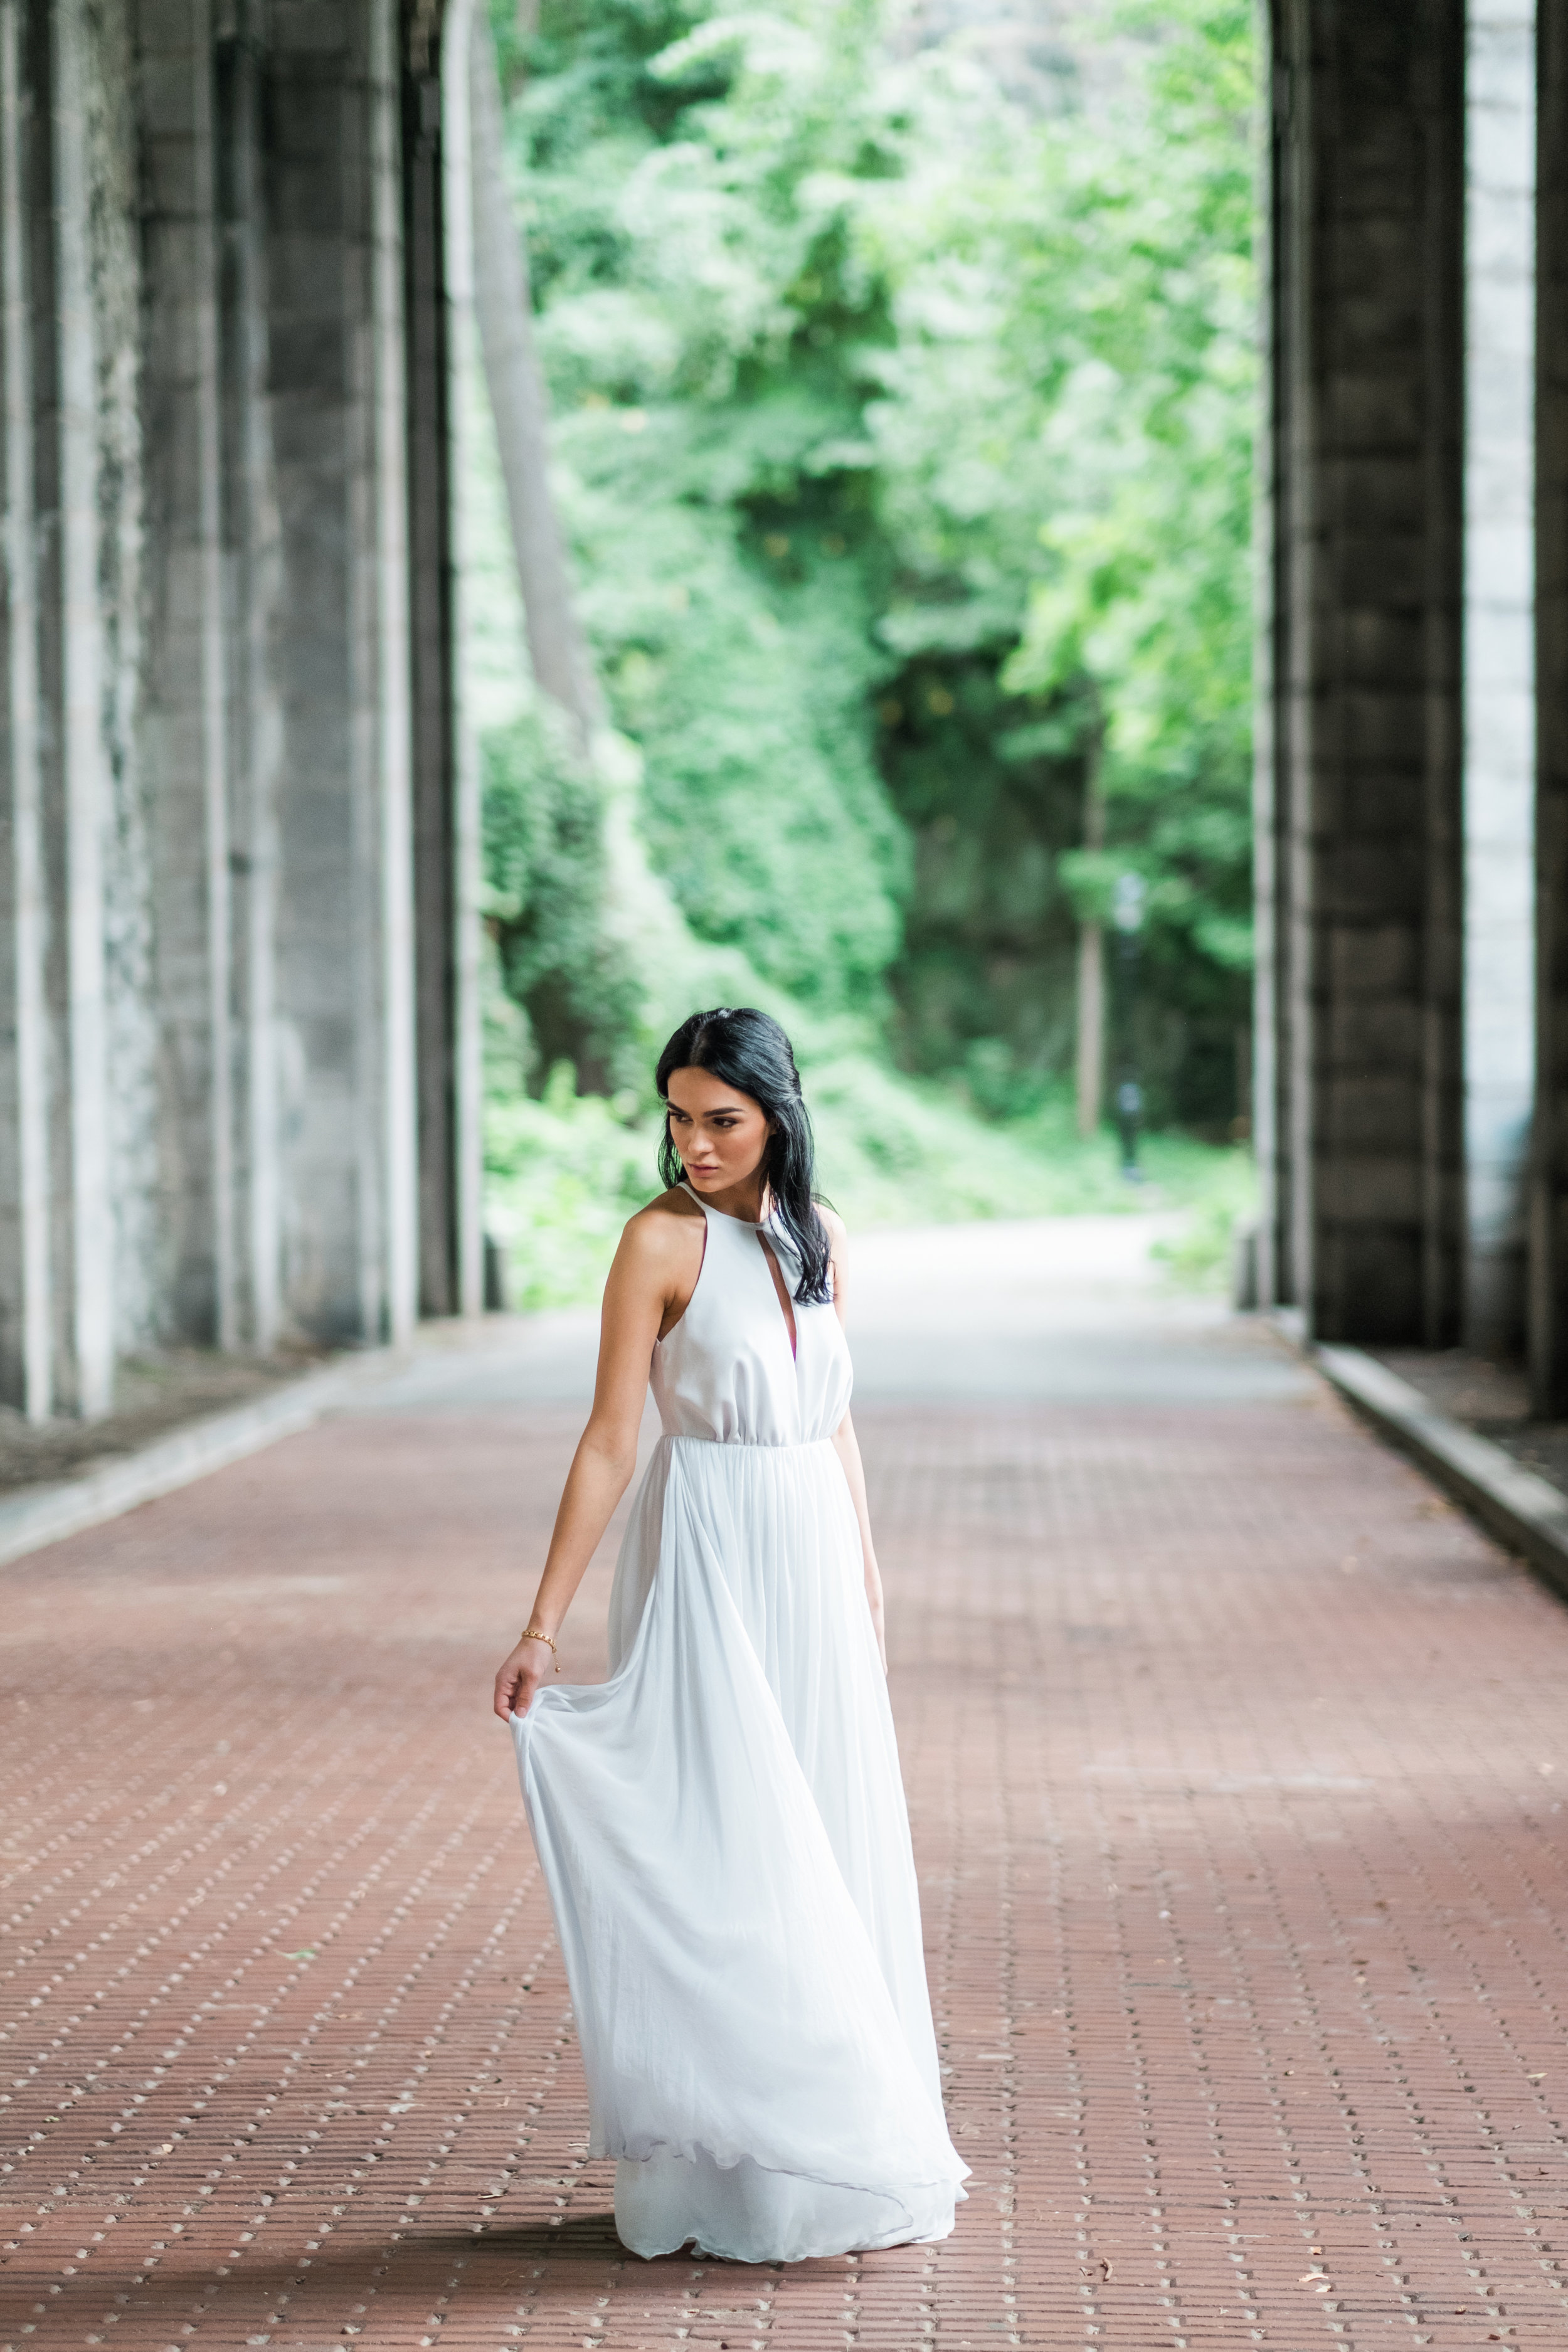 New York Bridals featured on The Pretty Blog